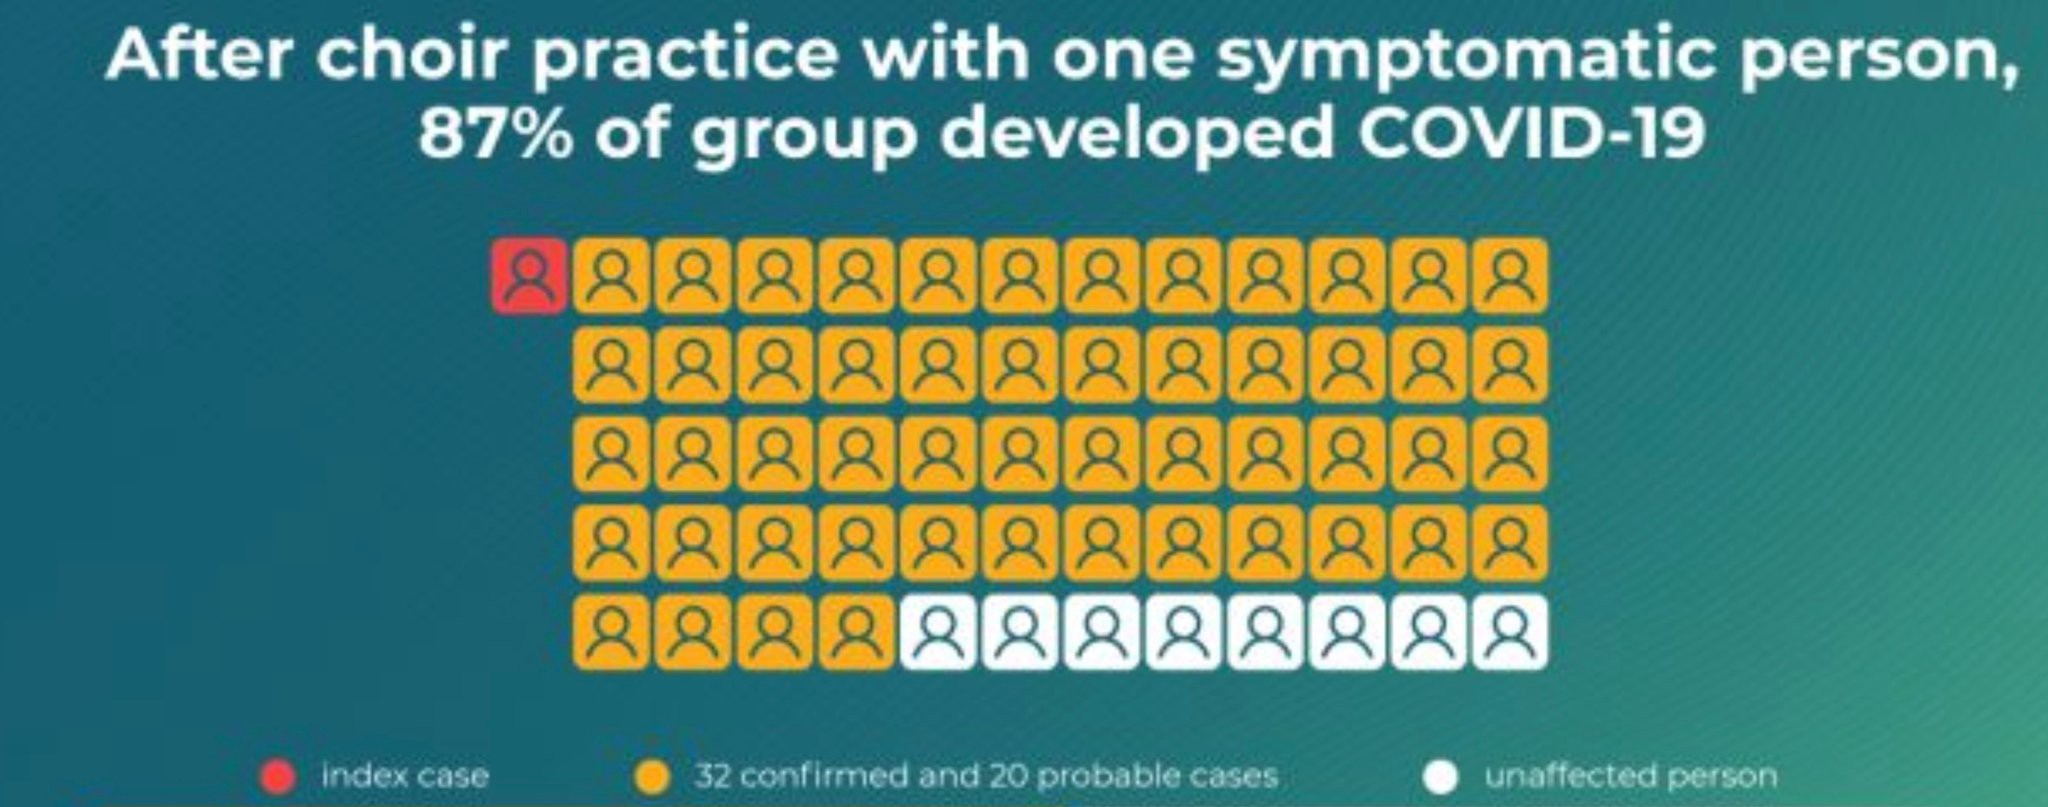 CDC graphic titled: After choir practice with one symptomatic person, 87% of group developed COVID-19.